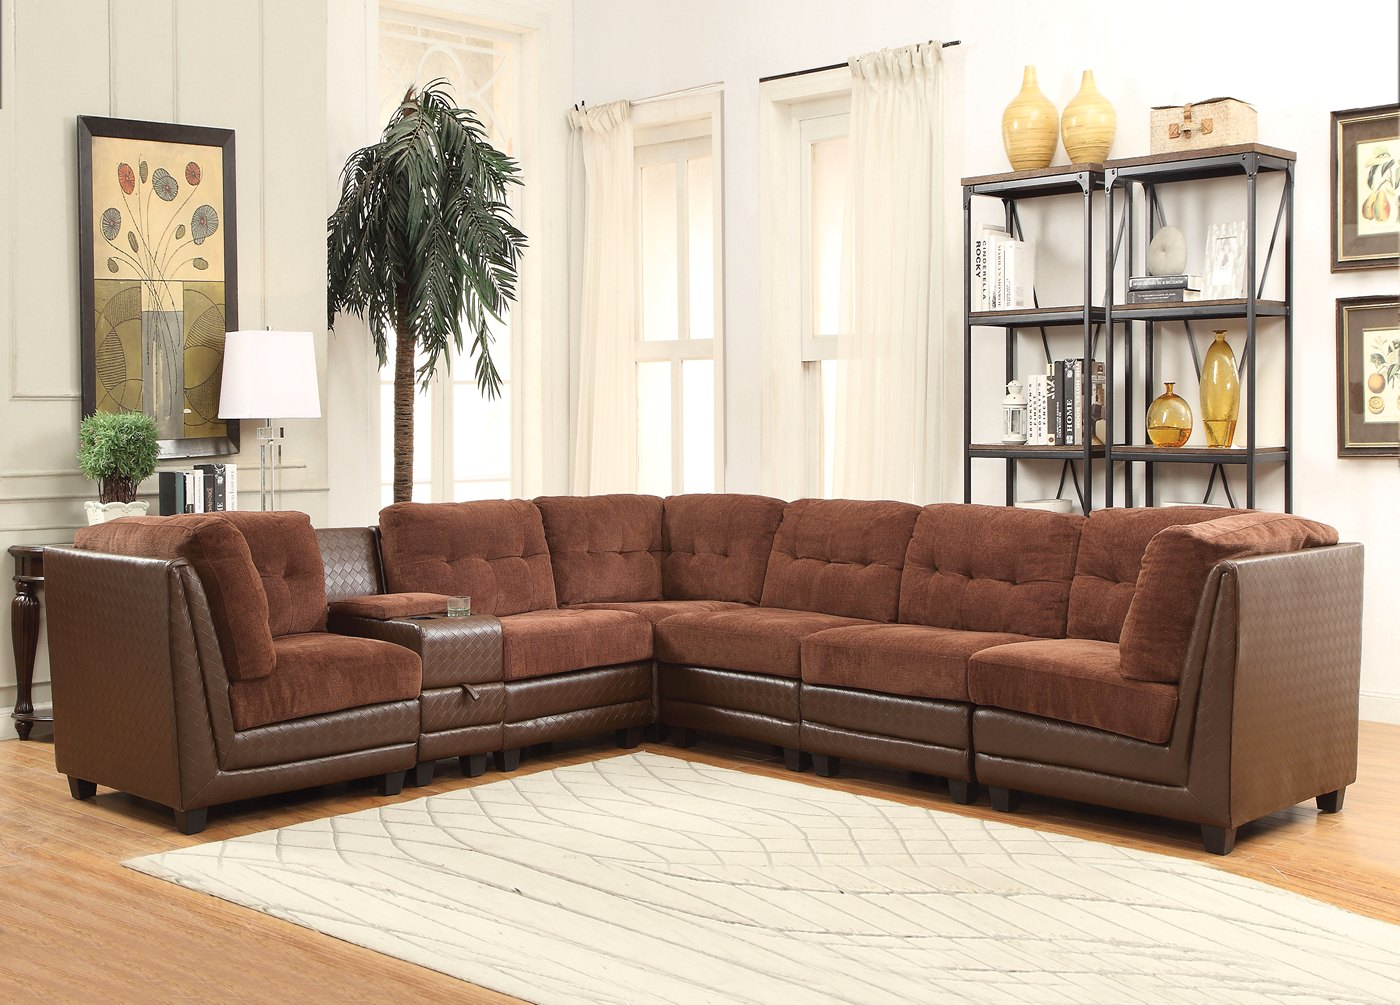 Valen 7 Pc Casual Modular Sectional Sofa In Brown Chenille